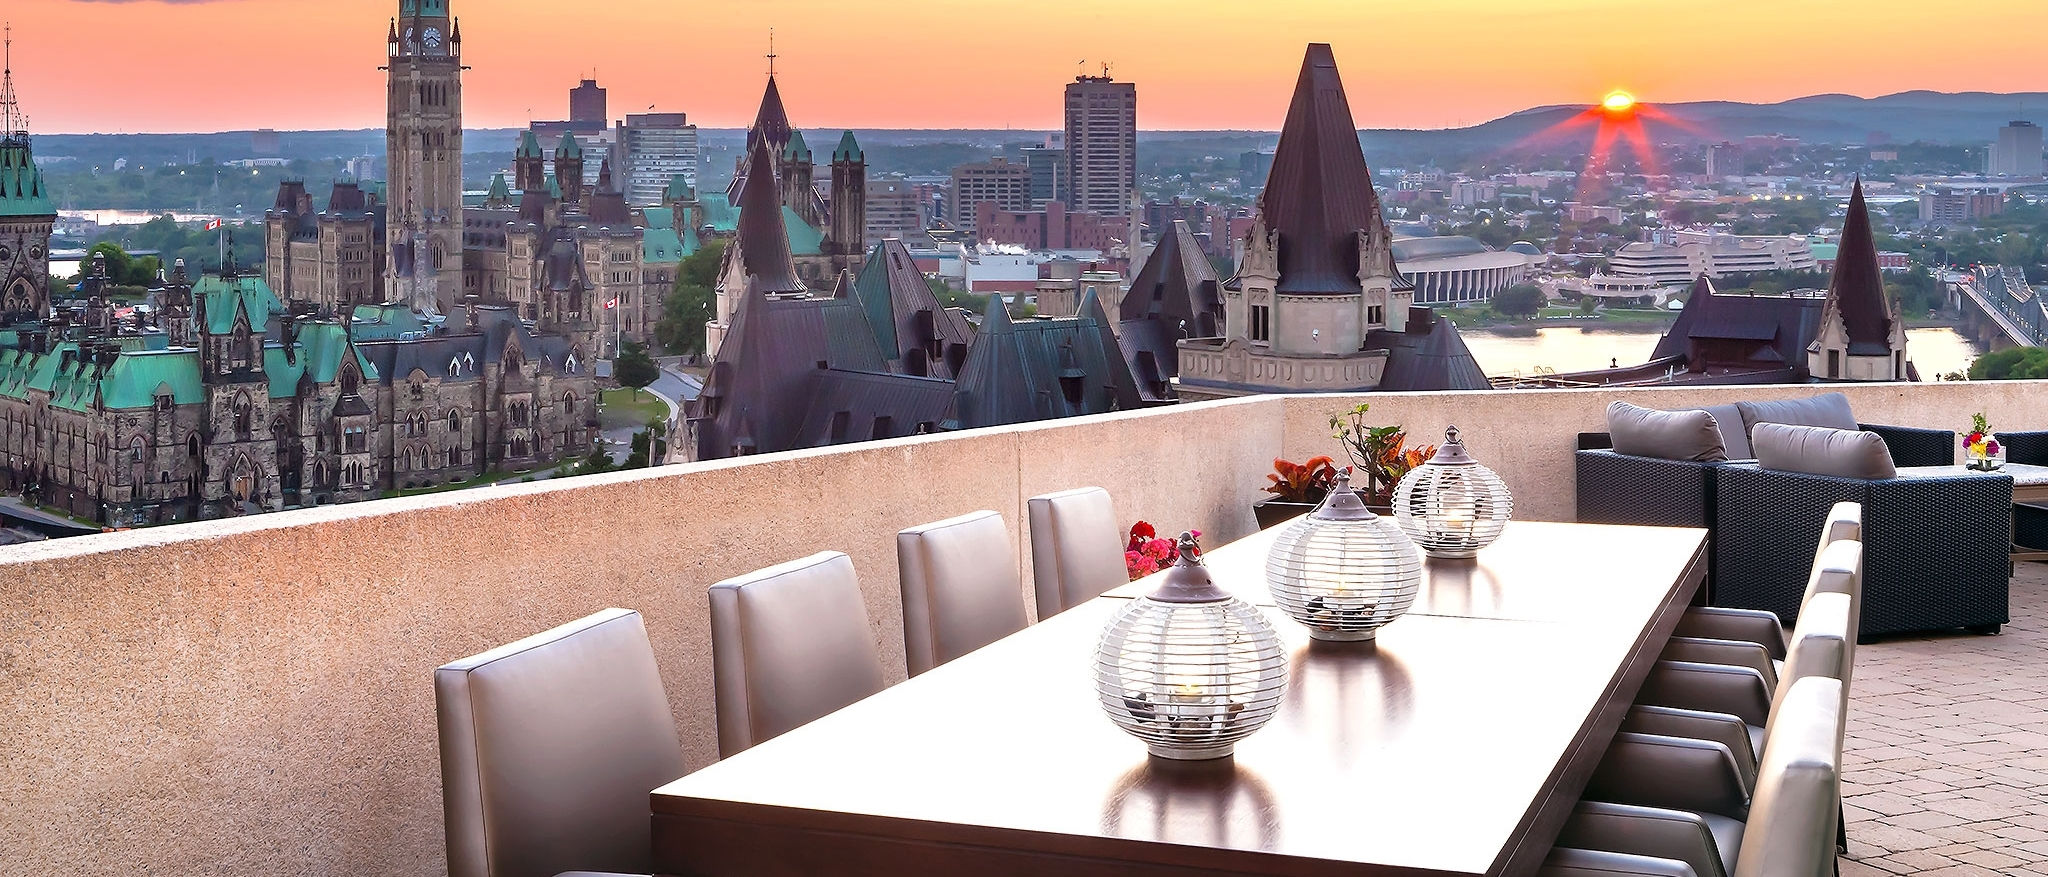 The Westin Ottawa - 23rd Floor Deck